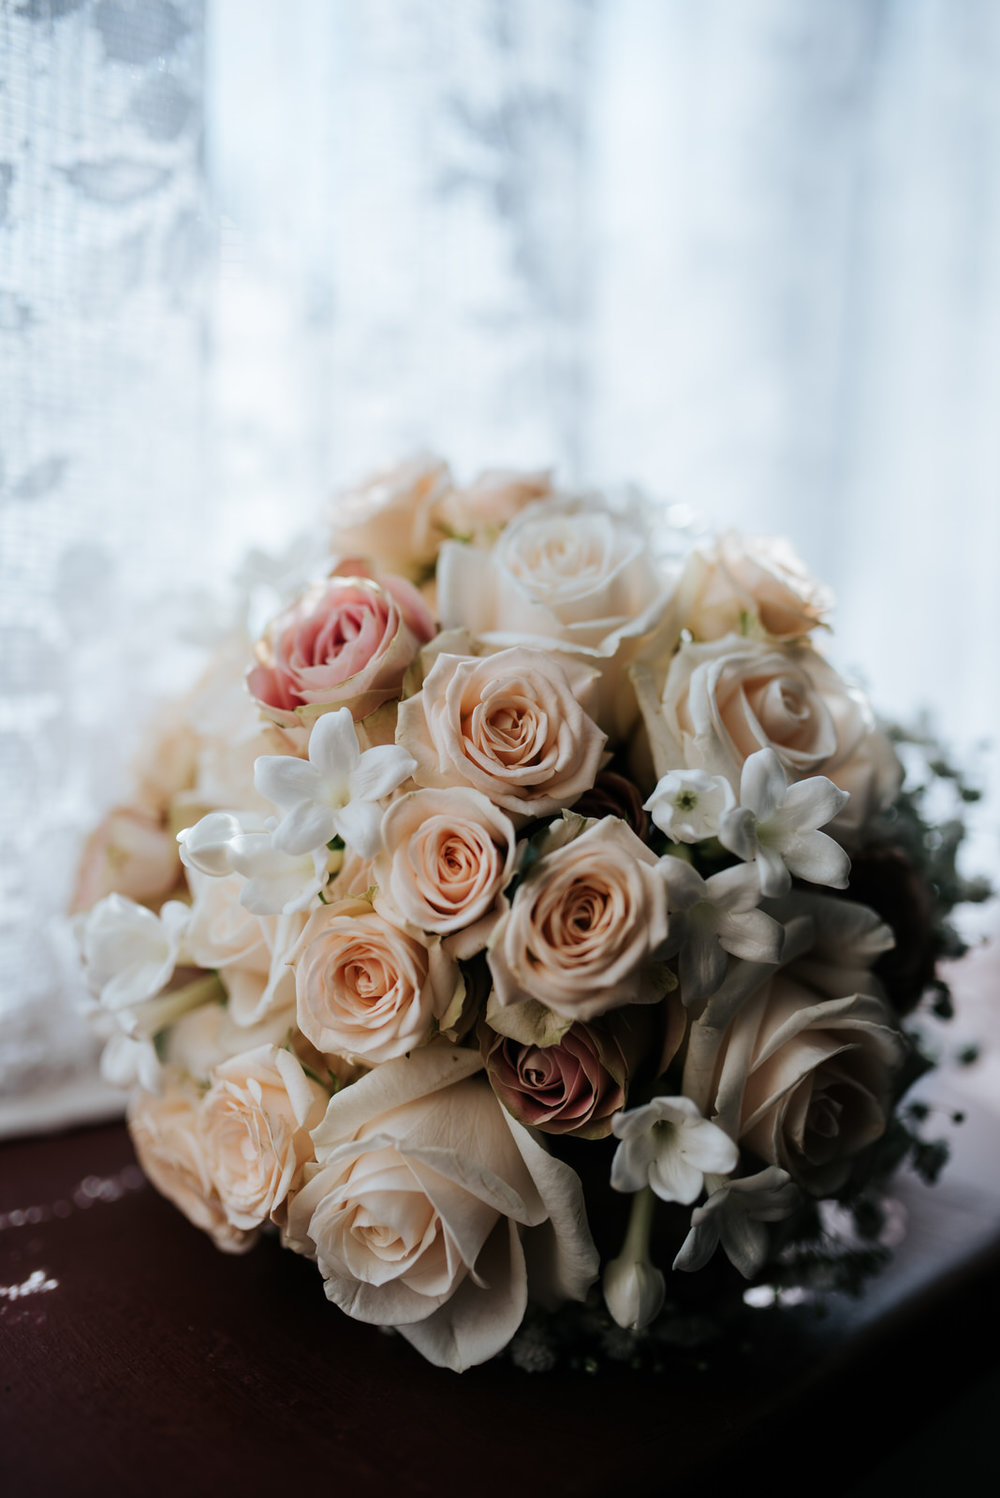 Beautiful white bridal bouquet in front of window